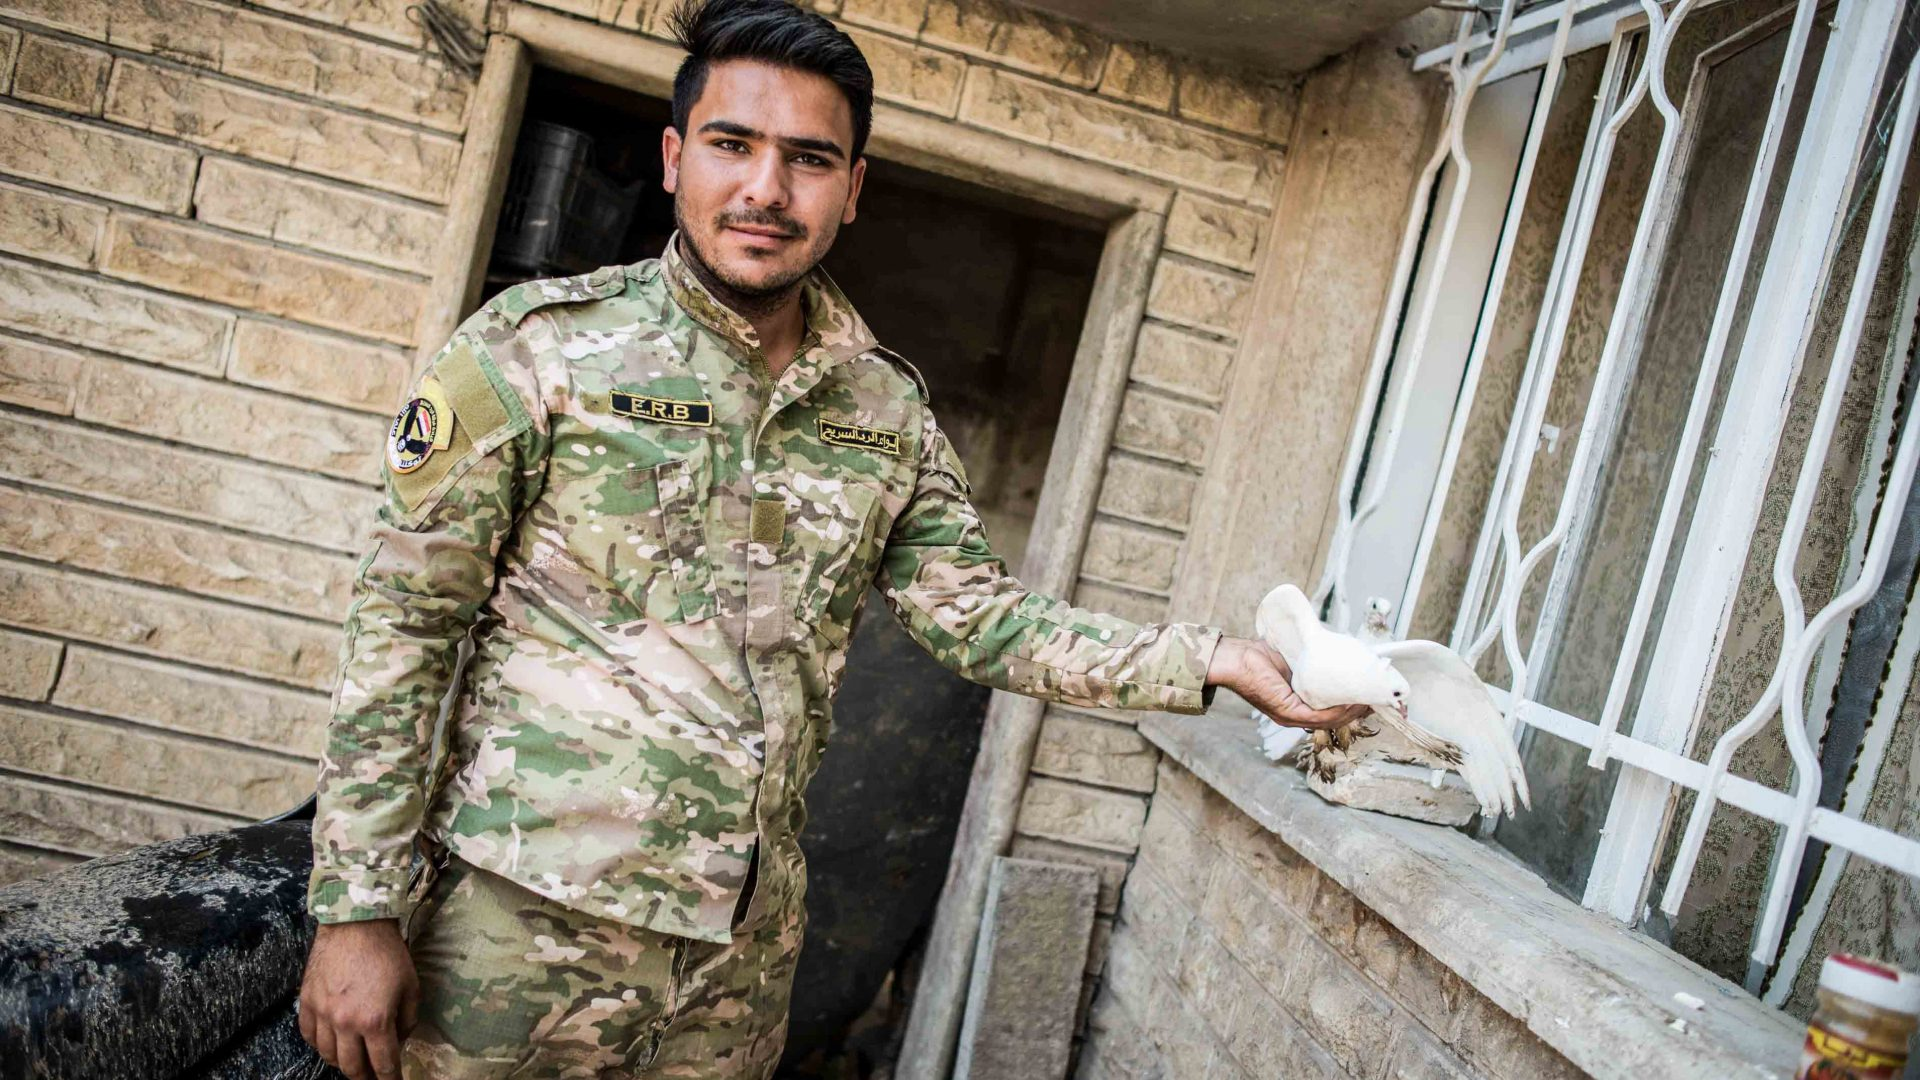 An Iraqi Emergency Response Division fighter poses with a dove in west Mosul.